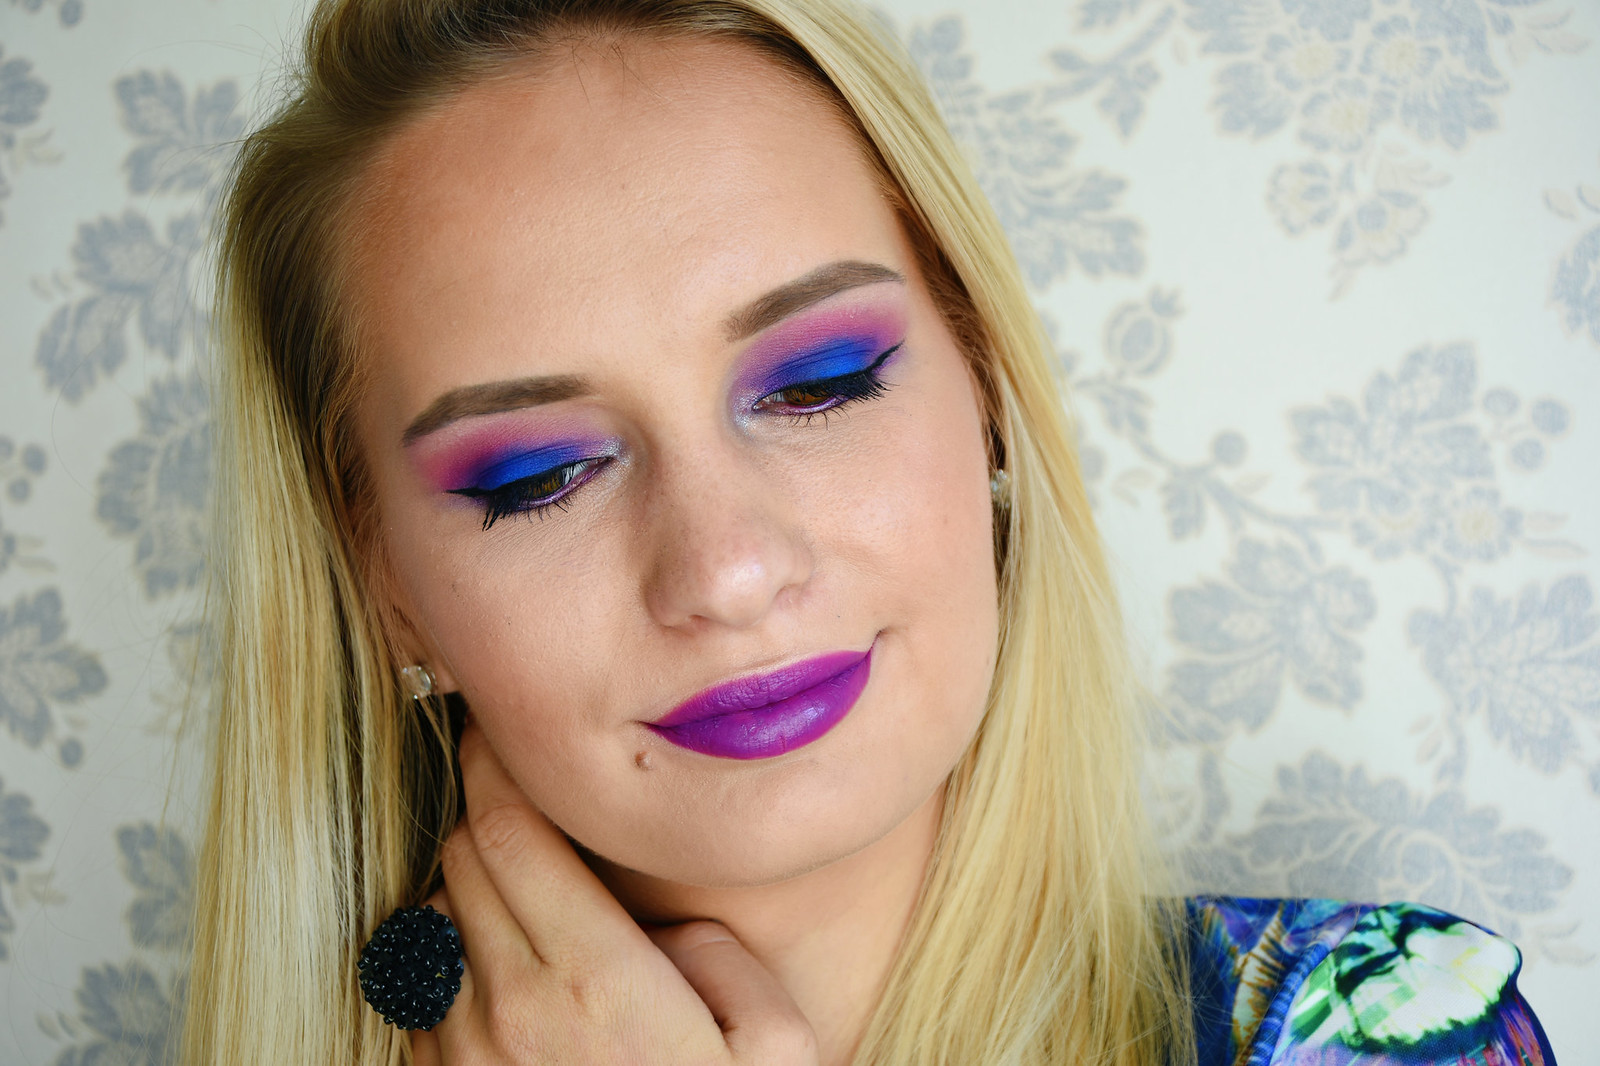 Beauty blogger from Europe